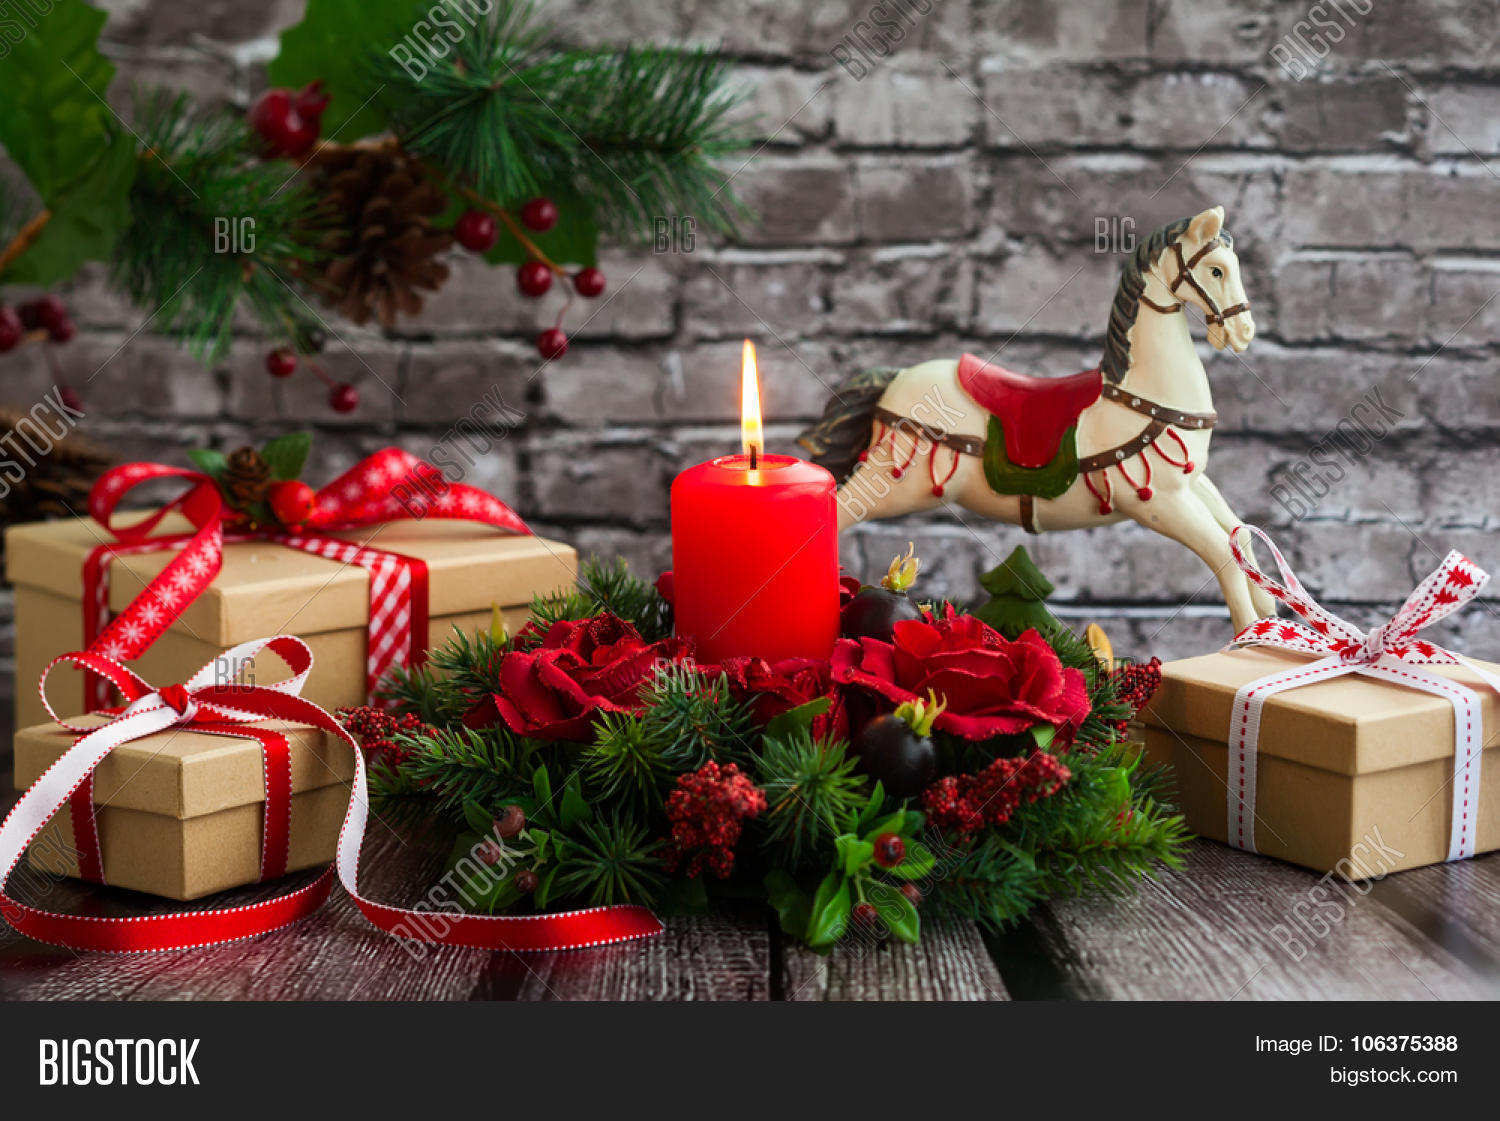 christmas decorations with red candlegift boxes and rocking horse on the old wooden table